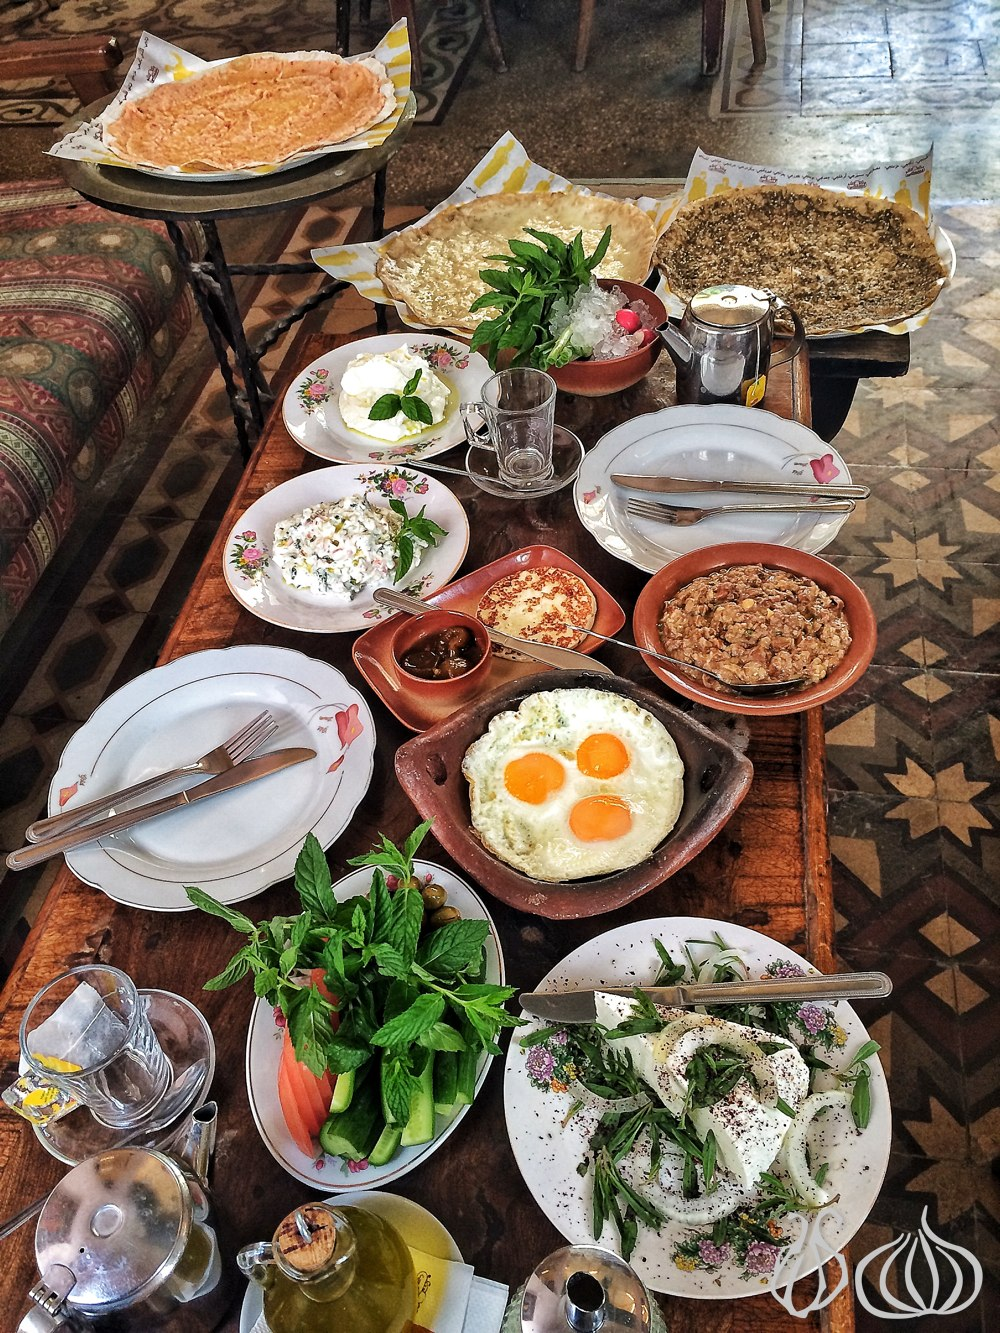 al-falamanki-restaurant-special-breakfast-labneh-cheese-eggs382014-09-15-09-29-11